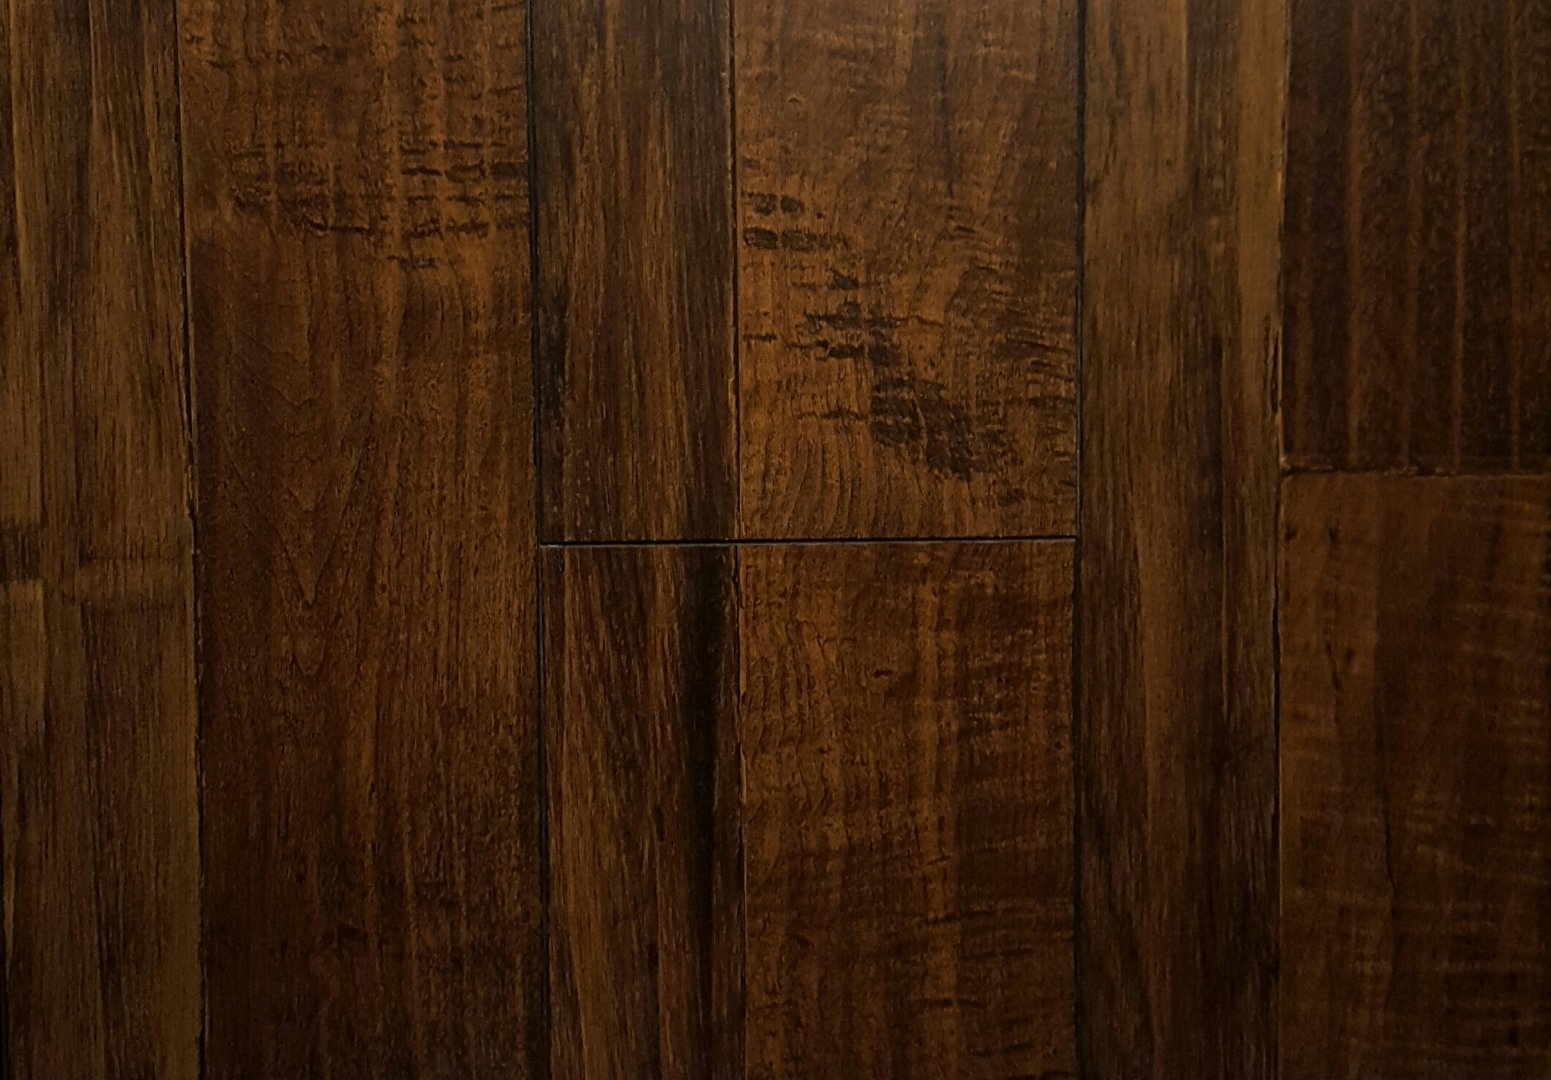 Antique Collection 8.3mm Handscraped Laminate Flooring - A1205 Honey Wood